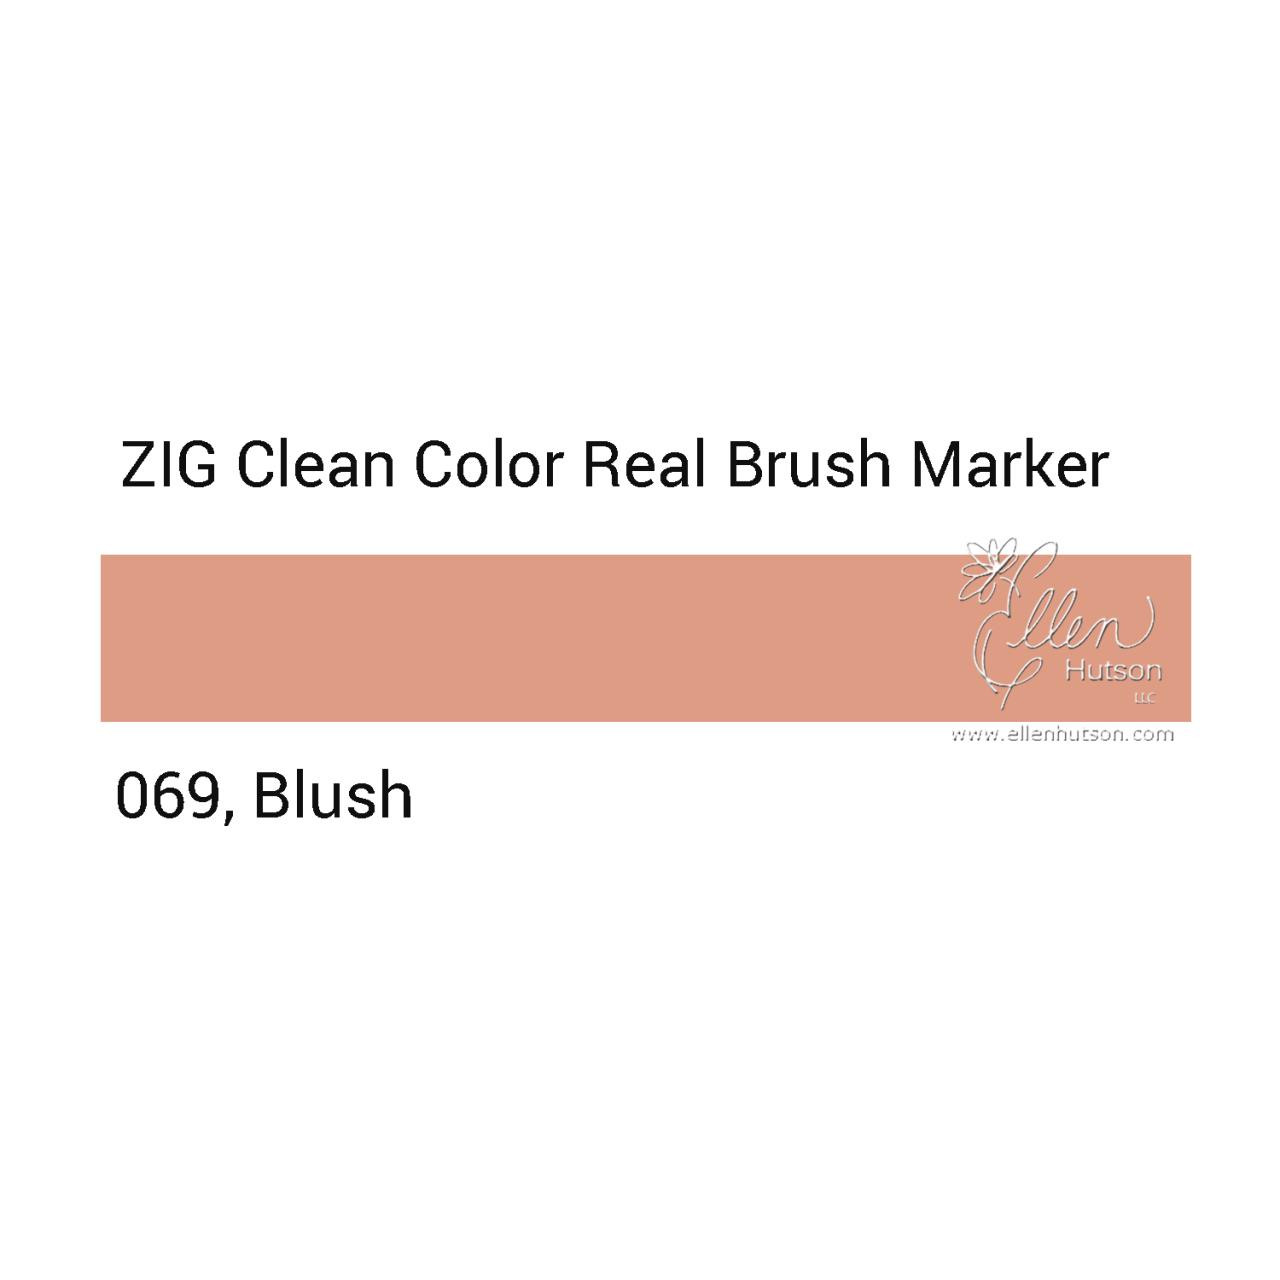 069 - Blush, ZIG Clean Color Real Brush Marker -